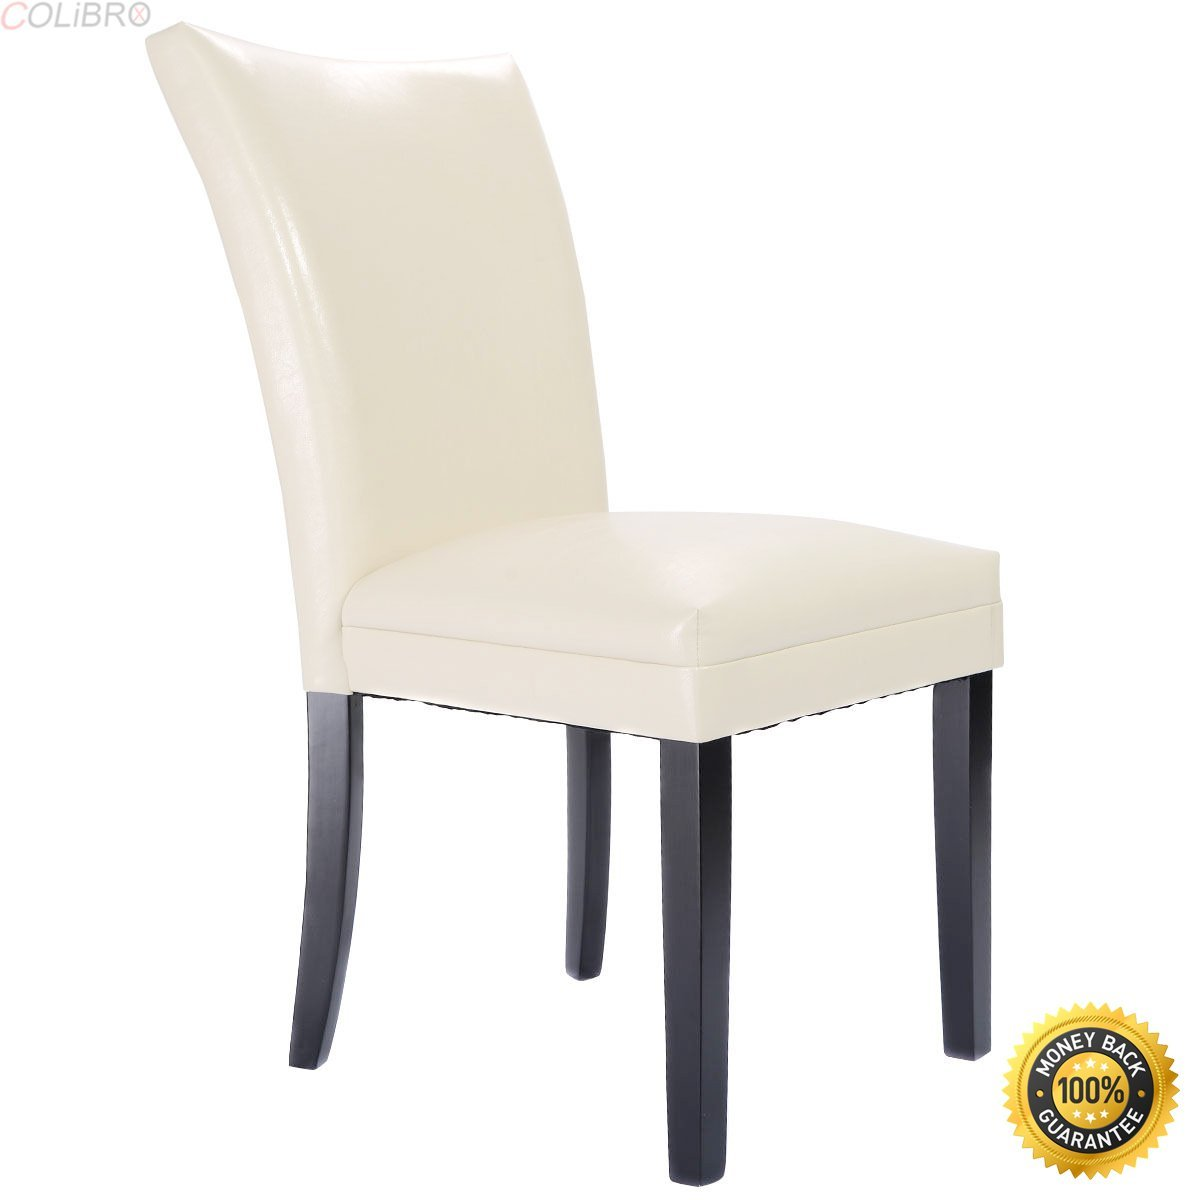 Buy Modern Design Leather Accent Dining Chairs Sturdy